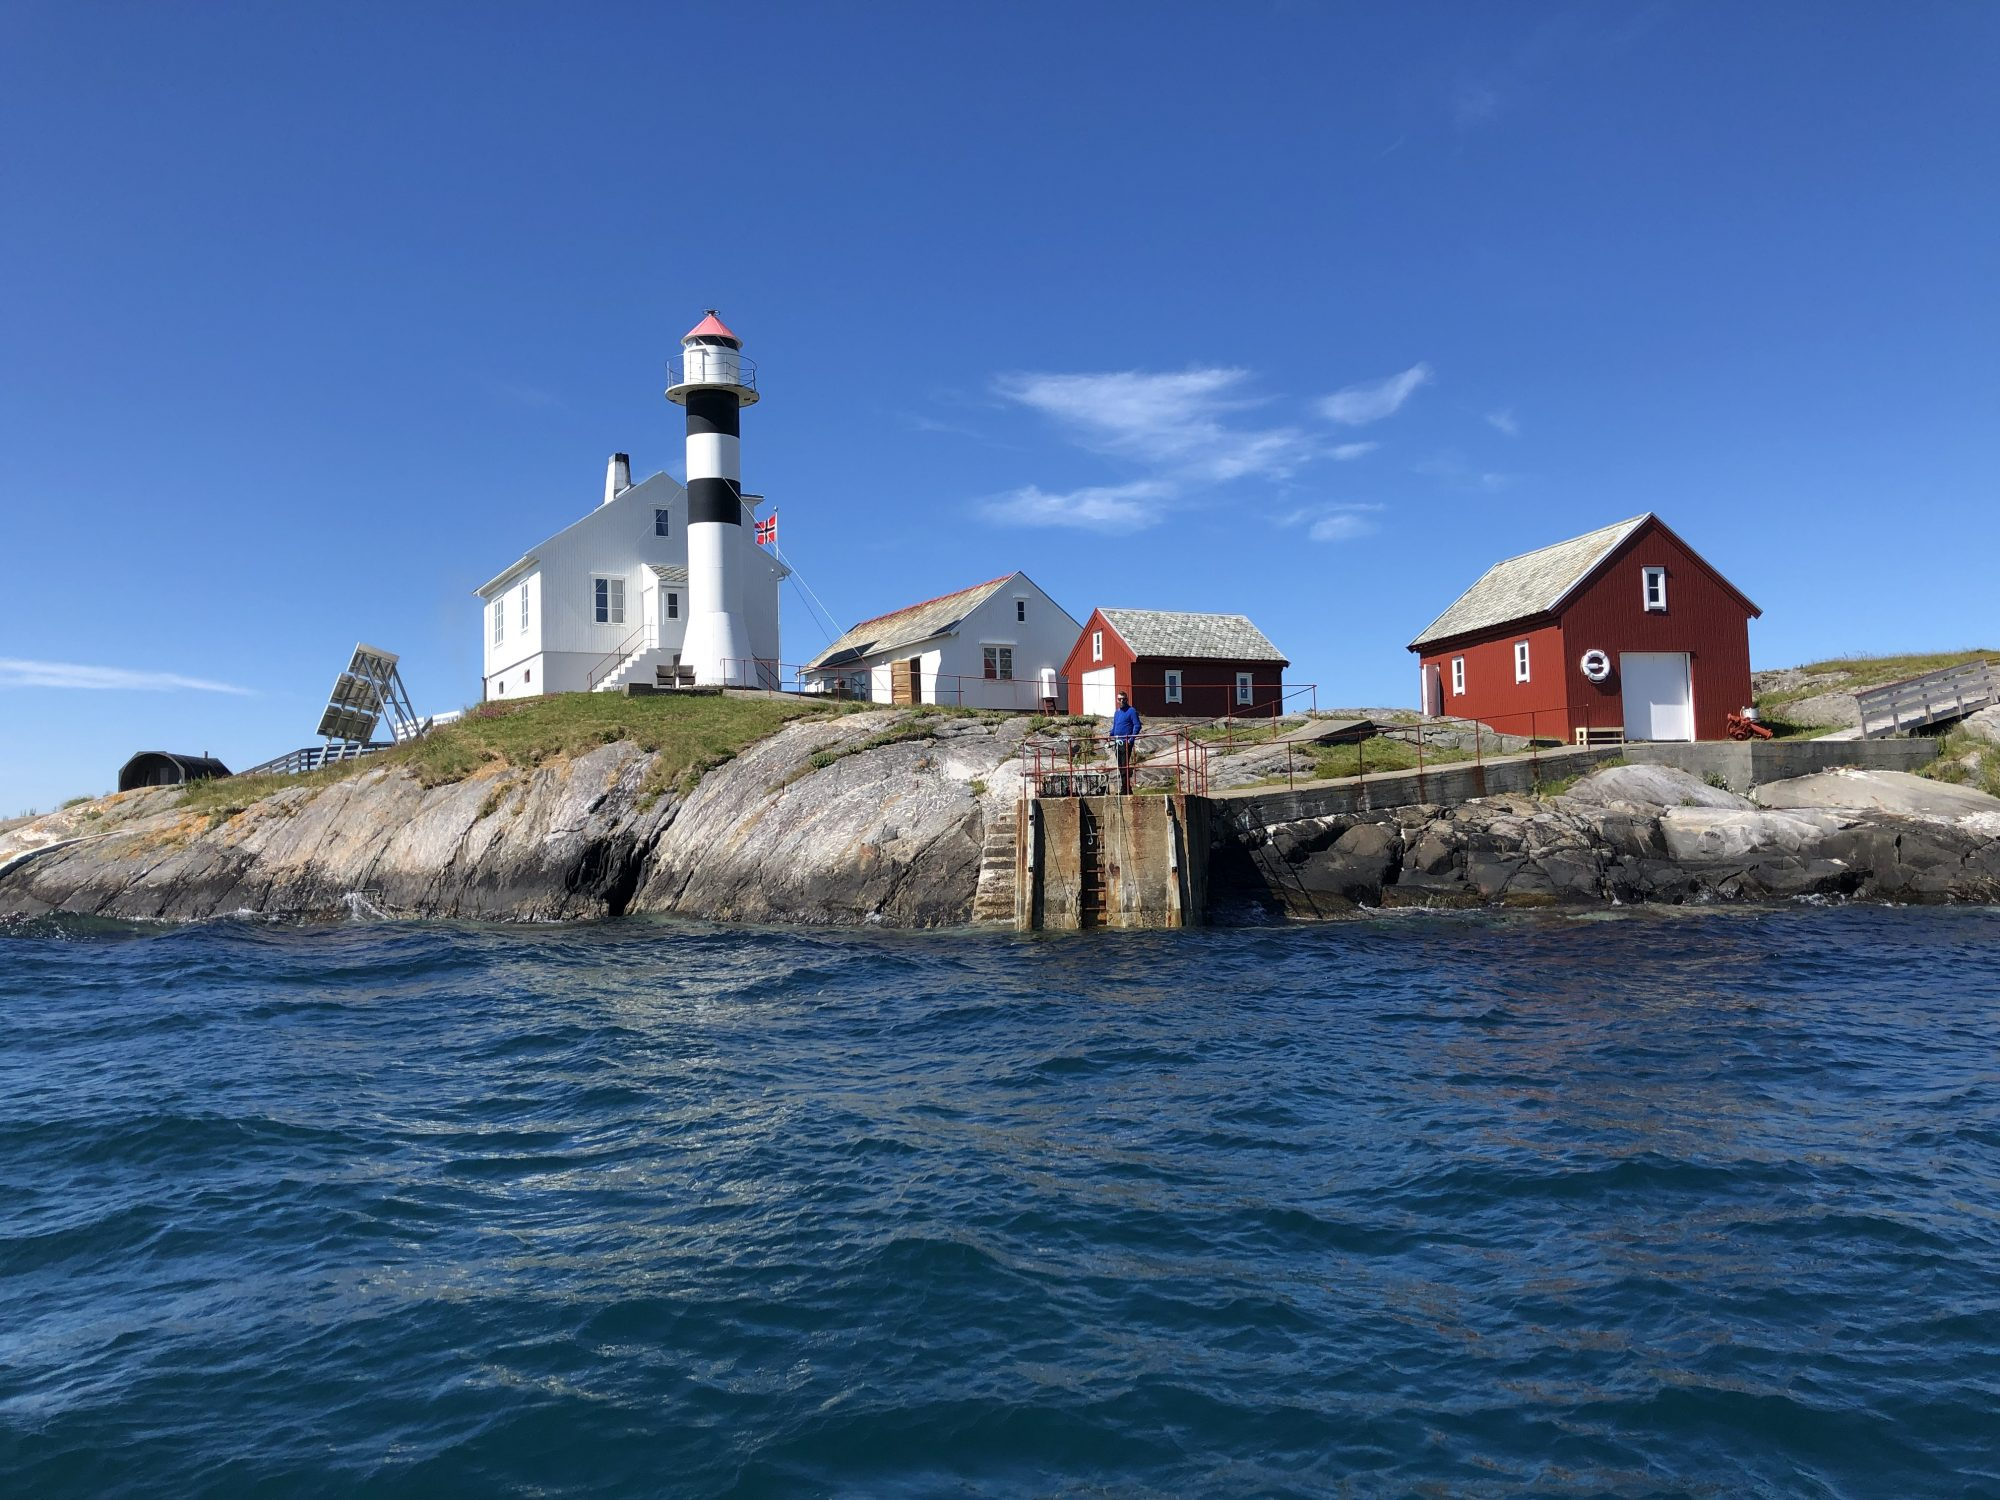 Flatflesa fyr lighthouse audioguide history lydguide voice of norway